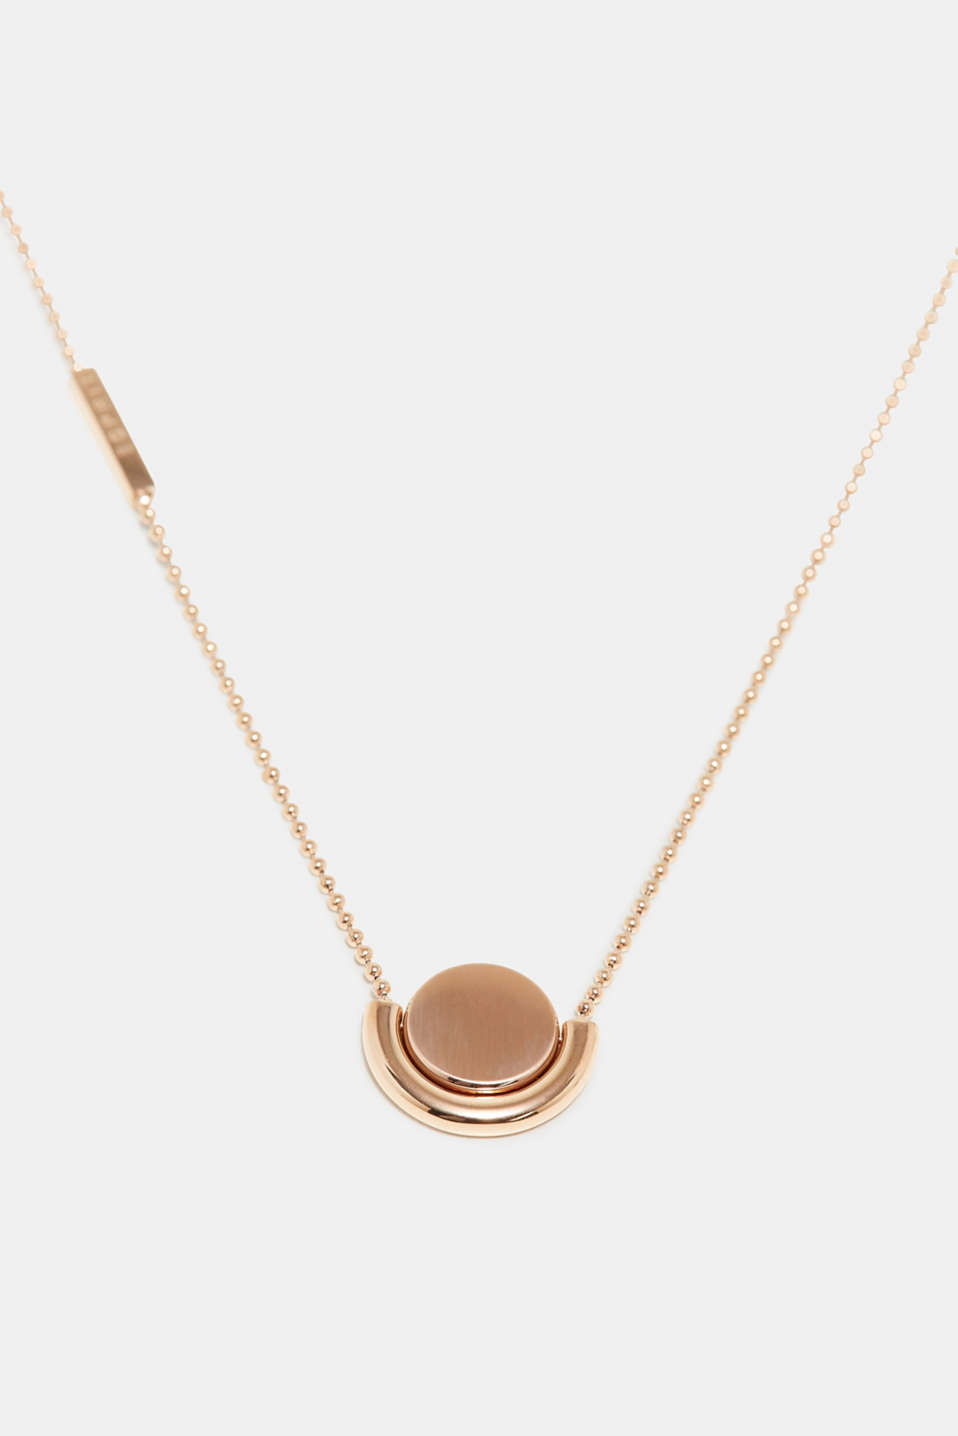 The rotating pendant on this necklace is a fine yet minimalistic highlight.